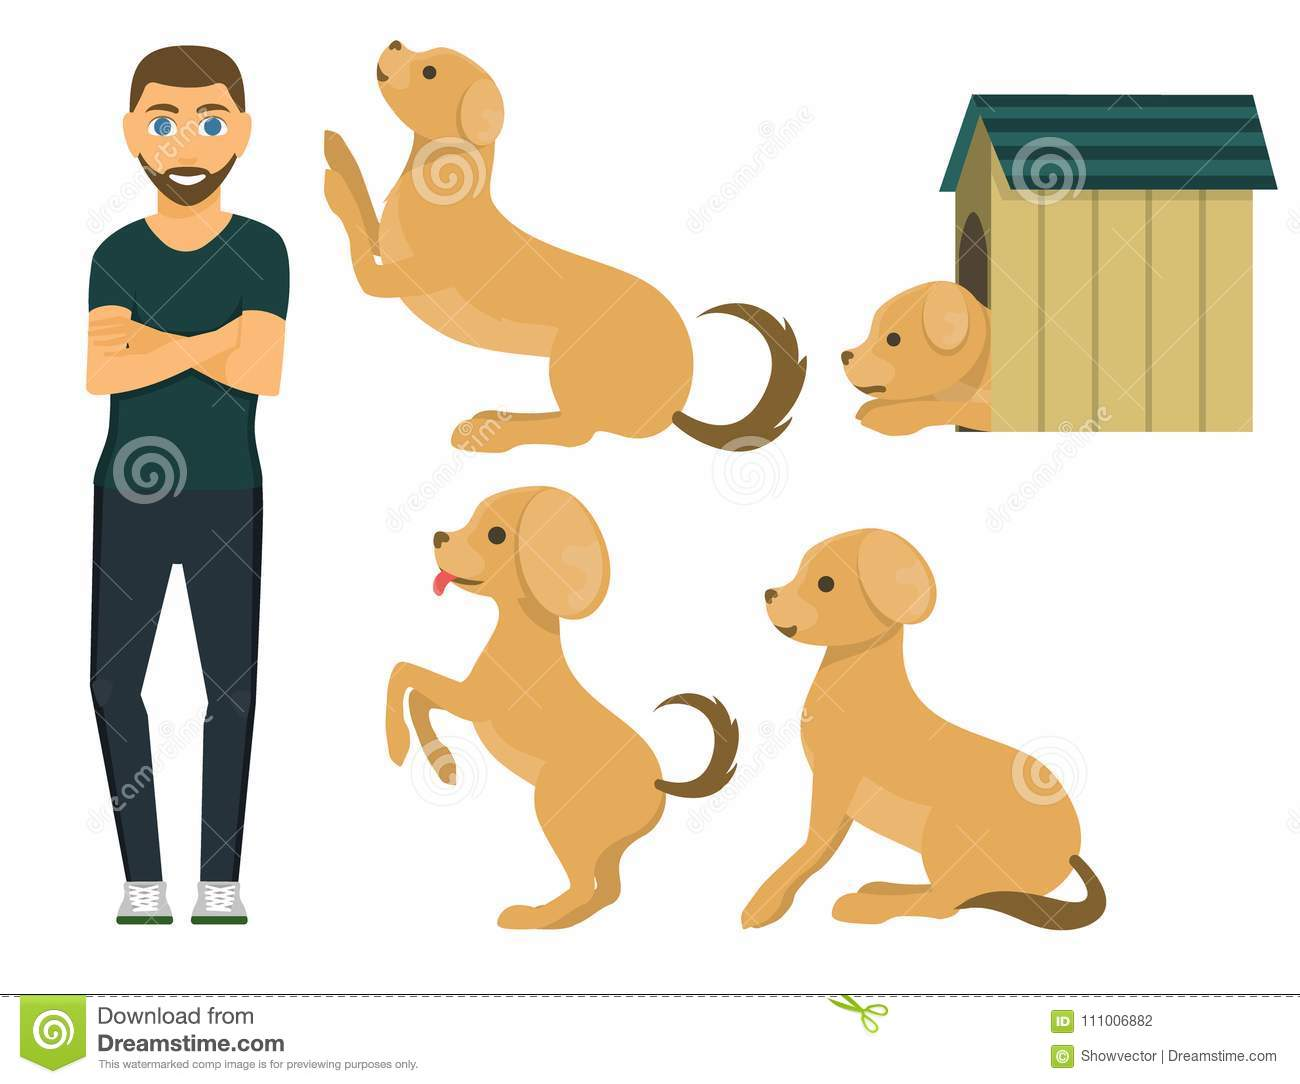 Download Funny Canine Adorable Dog - vector-illustration-cute-dog-character-funny-purebred-puppy-comic-smile-happy-mammal-breed-drawing-pedigree-terrier-canine-111006882  Graphic_469497  .jpg